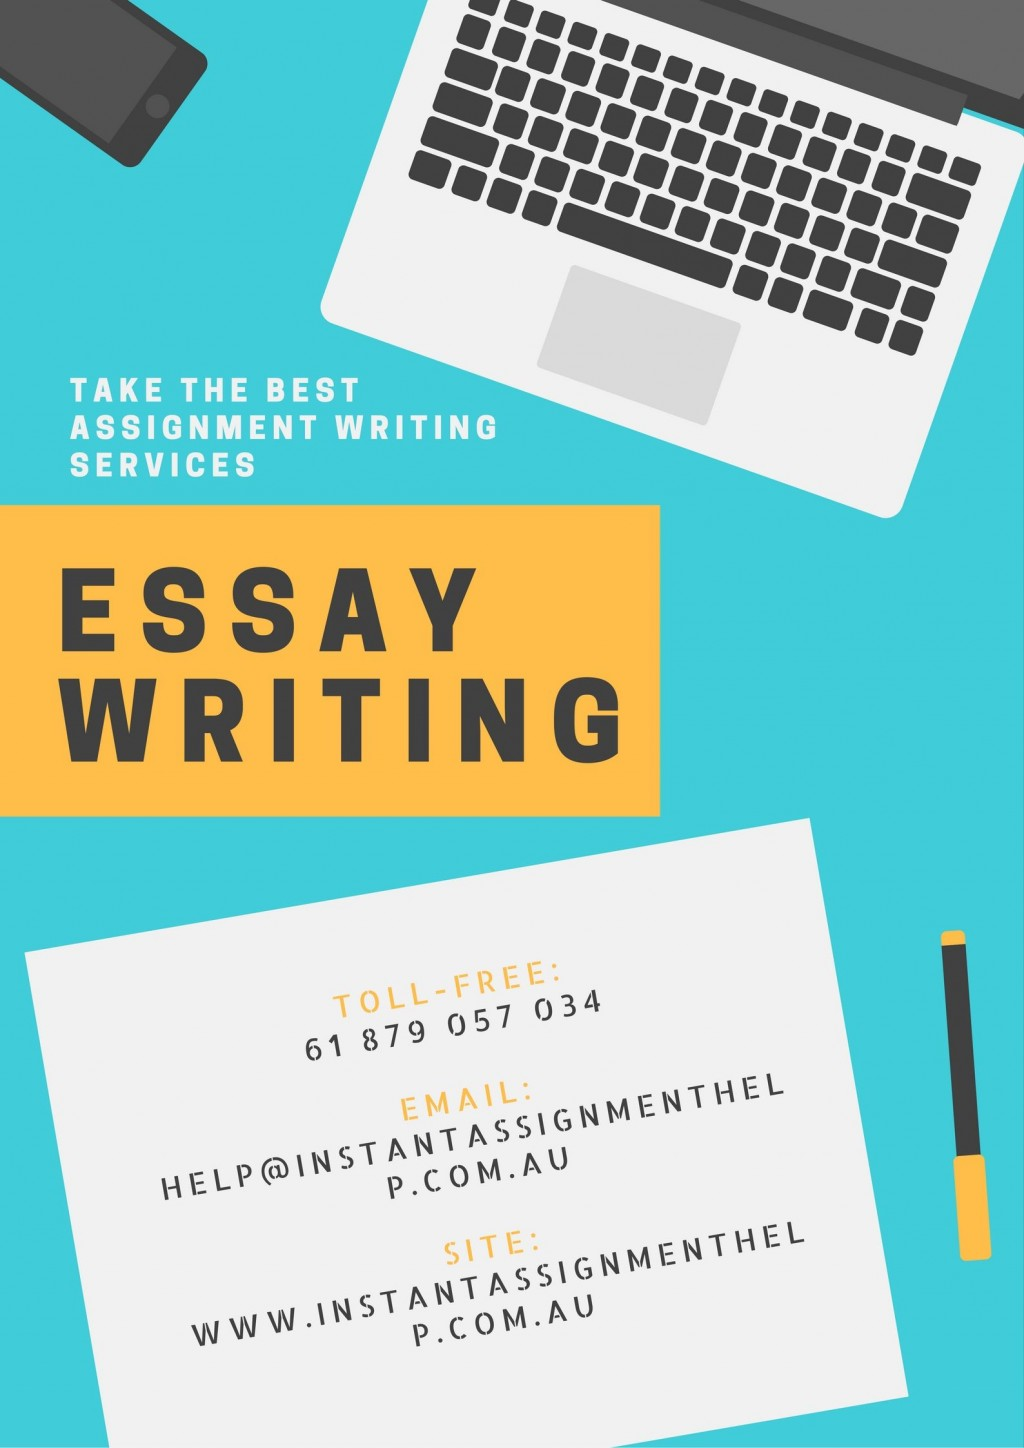 004 Essay Writing Help Example Frightening For Middle School Students High Helper Free Large